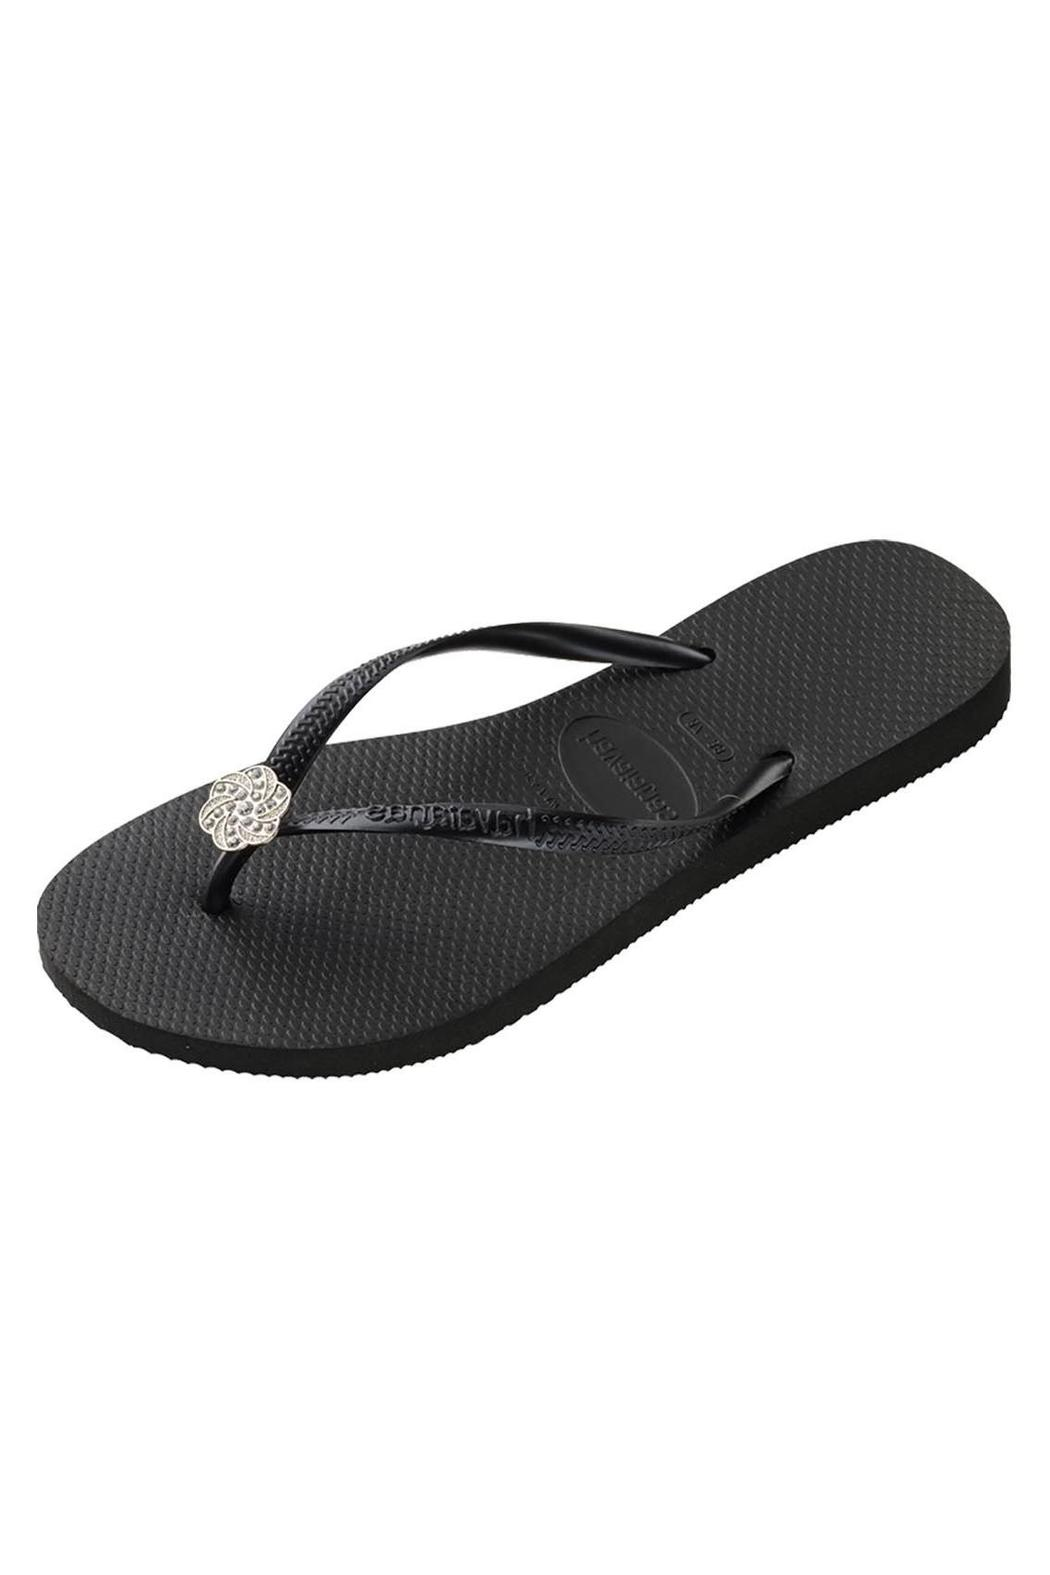 ae33a0729842a3 Havaianas Flower Embellished Flip-Flops from Washington by Dolly ...